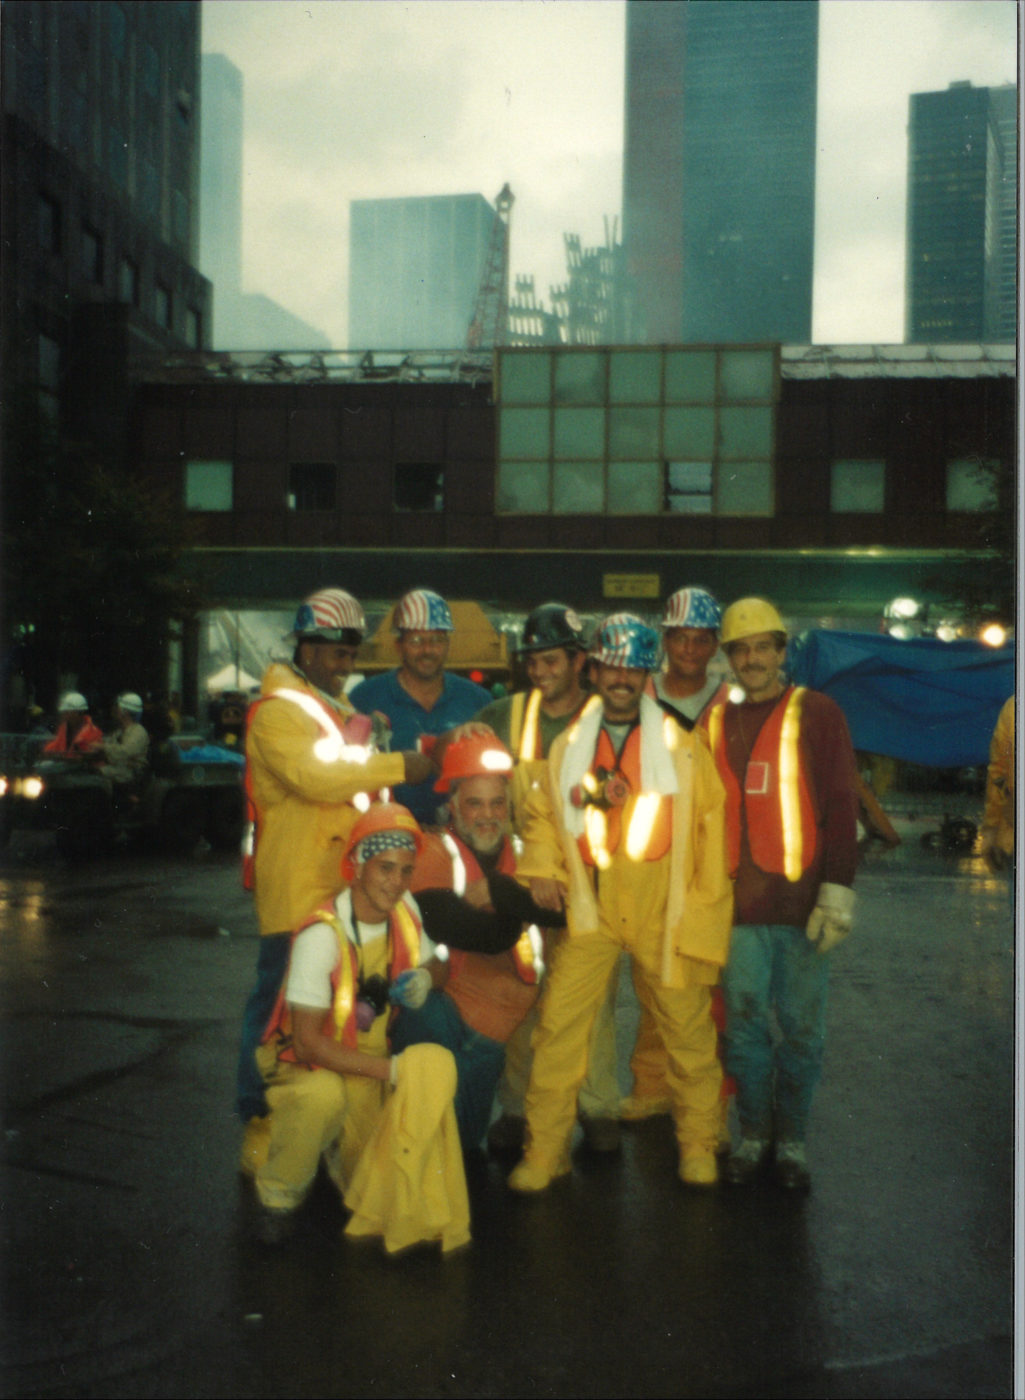 Workers in front of 200 Vesey Street with Ground Zero in background